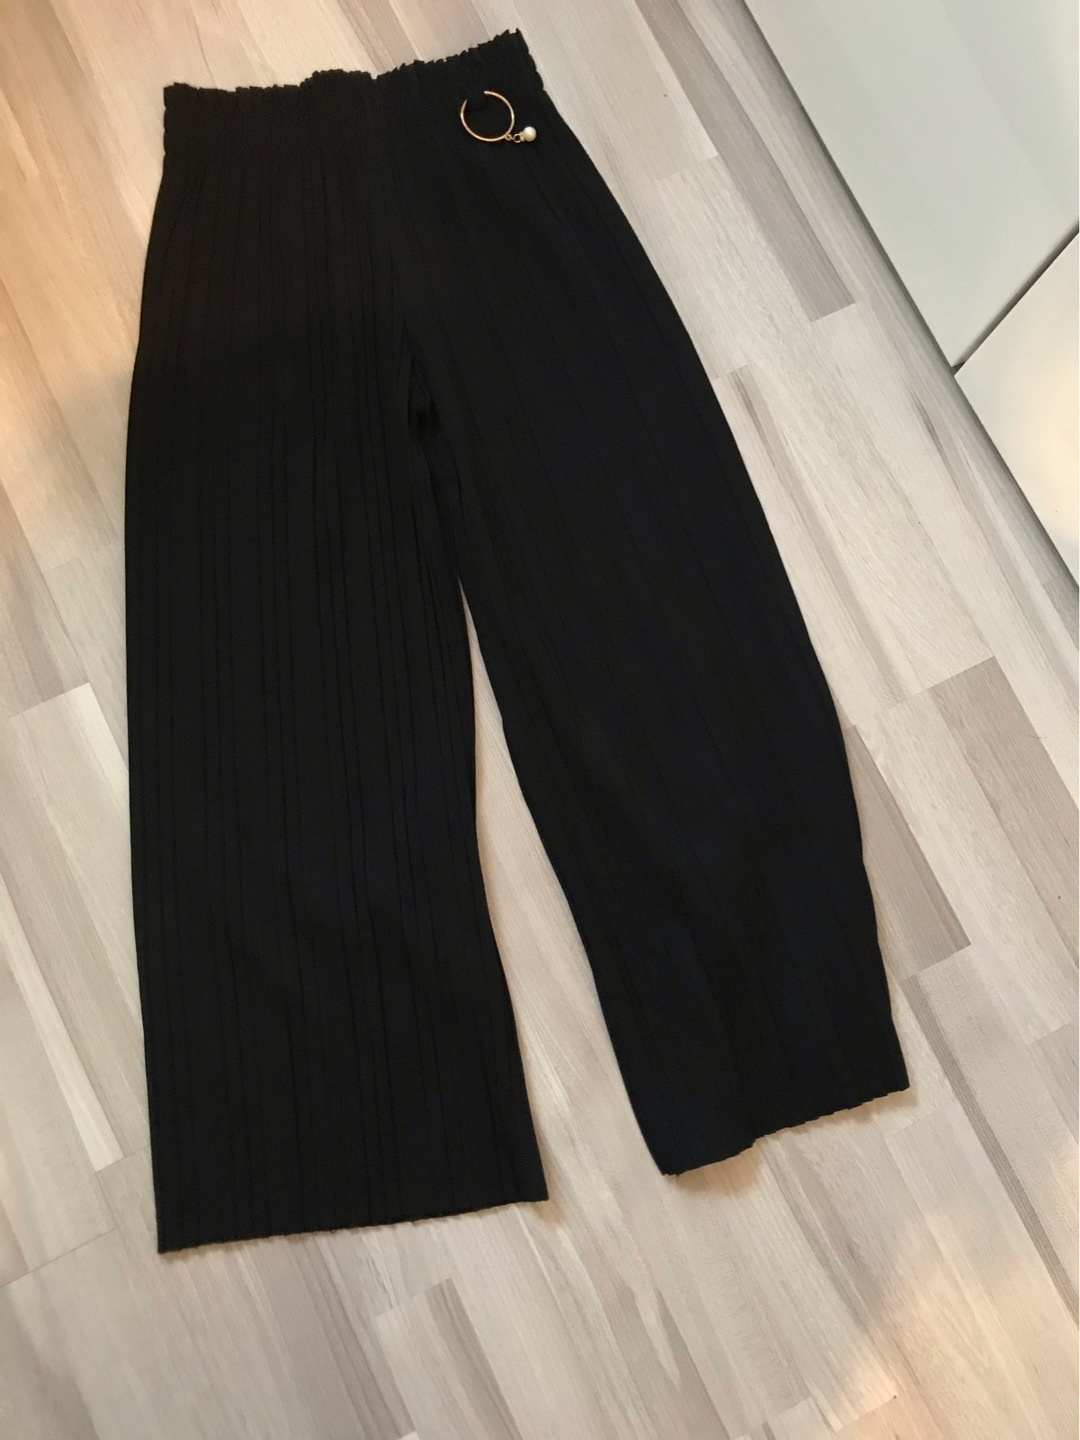 Women's trousers & jeans - - photo 1